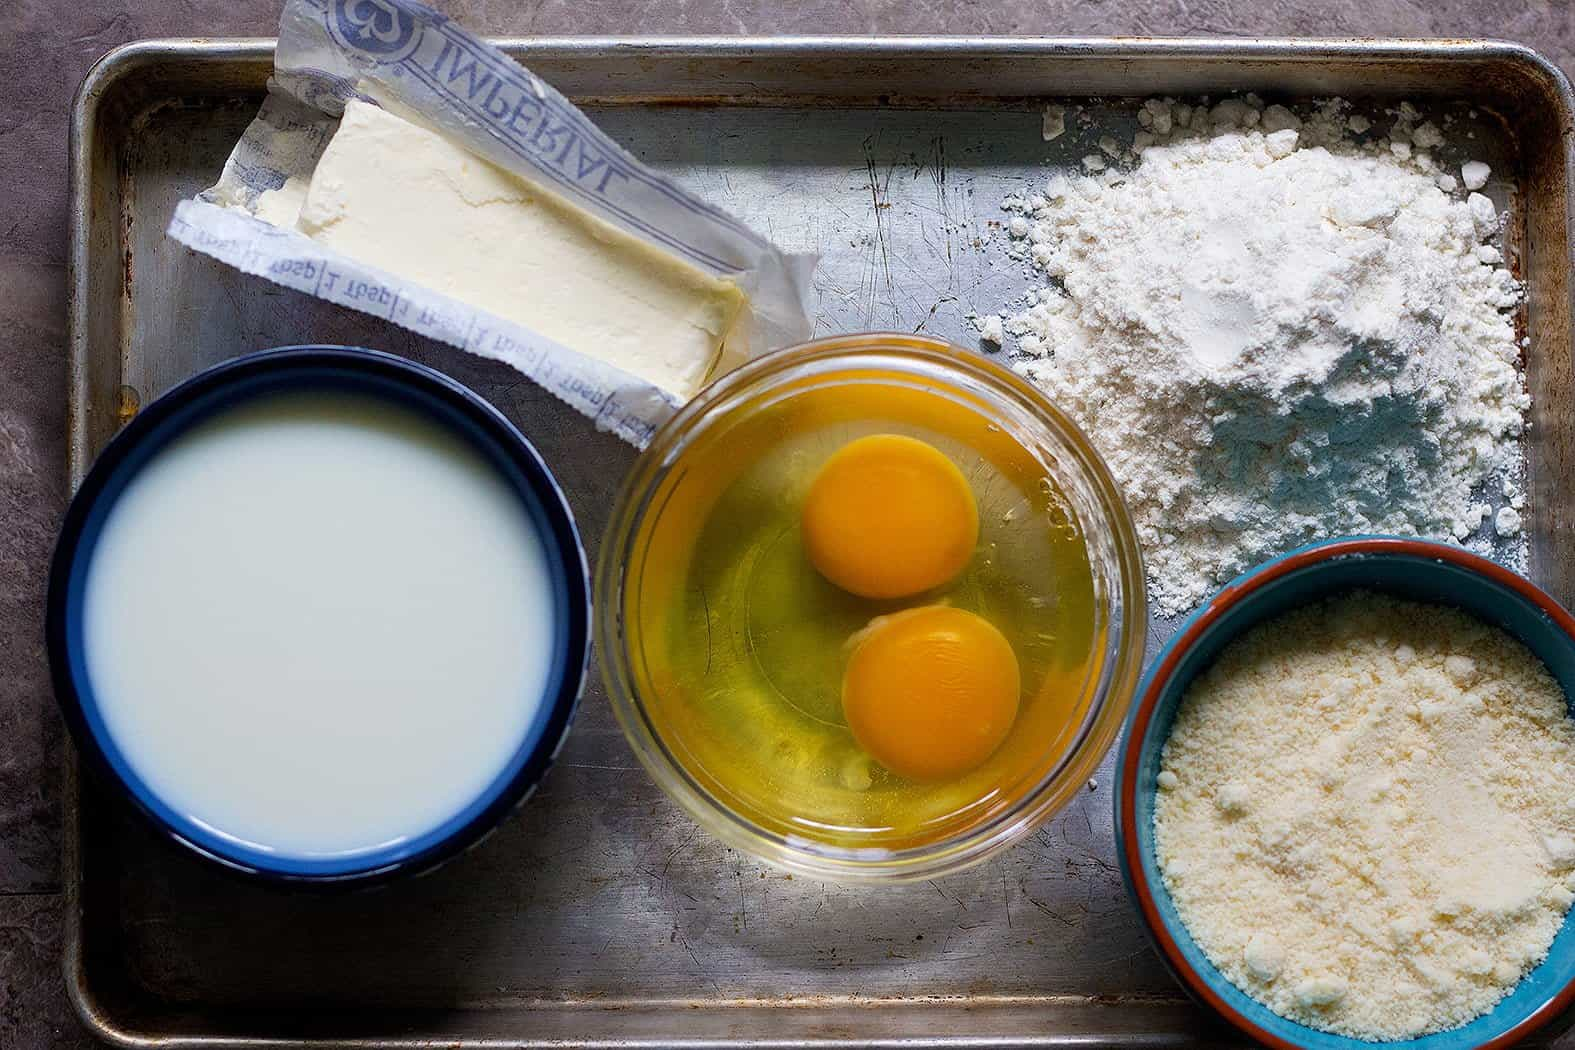 To make Bechamel sauce you need butter, flour, milk, eggs and parmesan cheese.